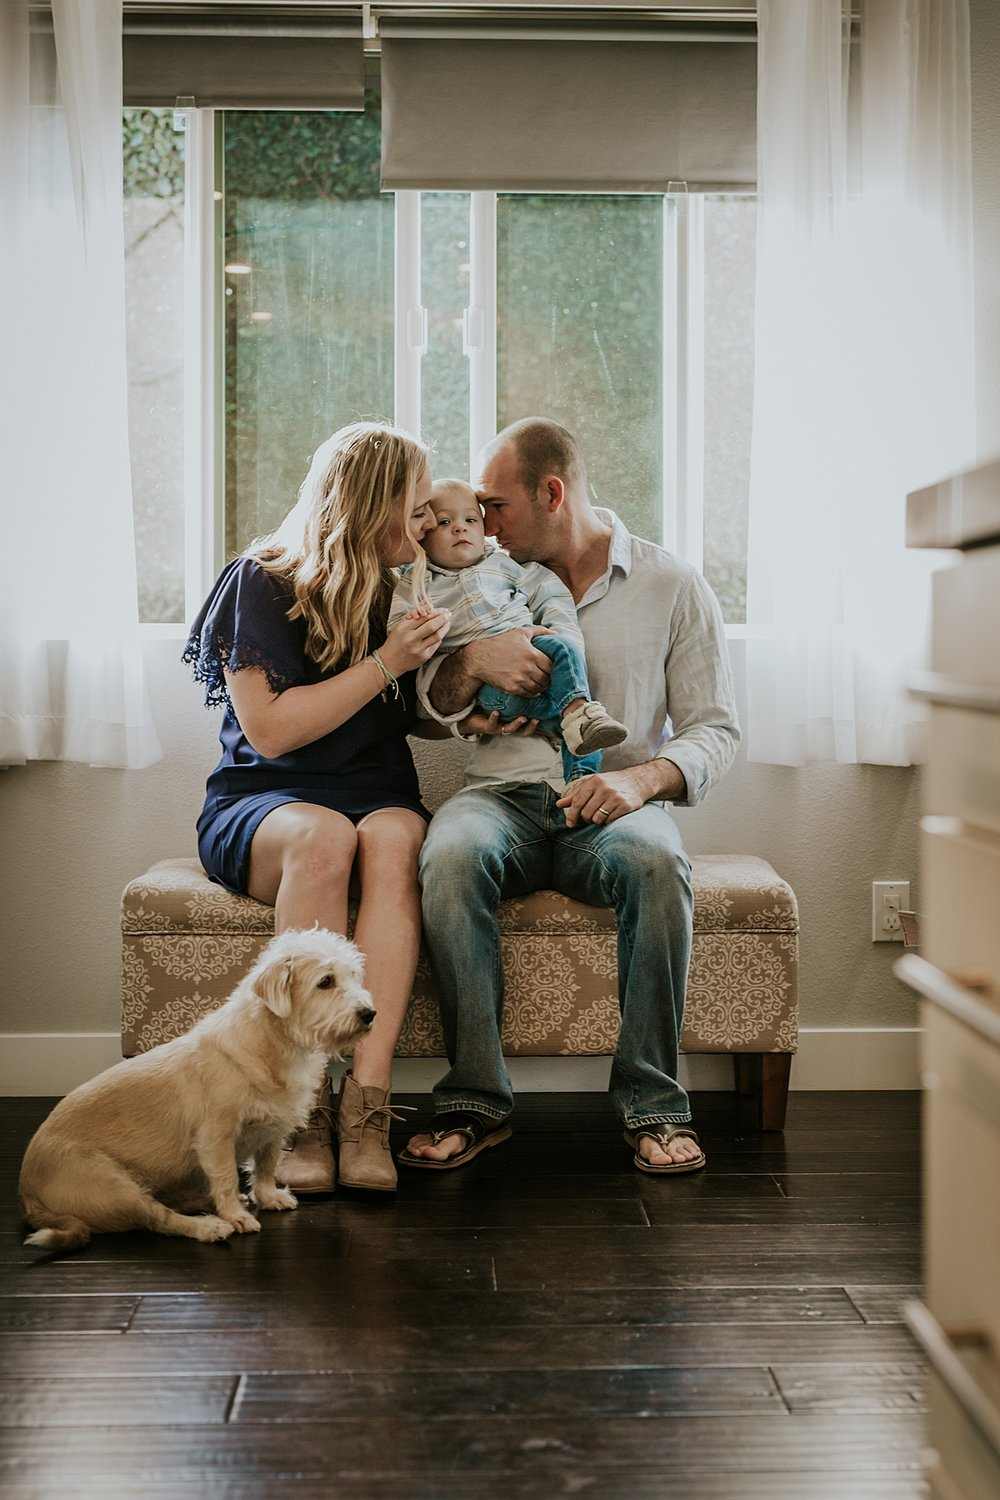 Orange County family photographer. Mom, dad, dog and son sit in front of light drenched window looking cute during in home family photo shoot in Huntington Beach